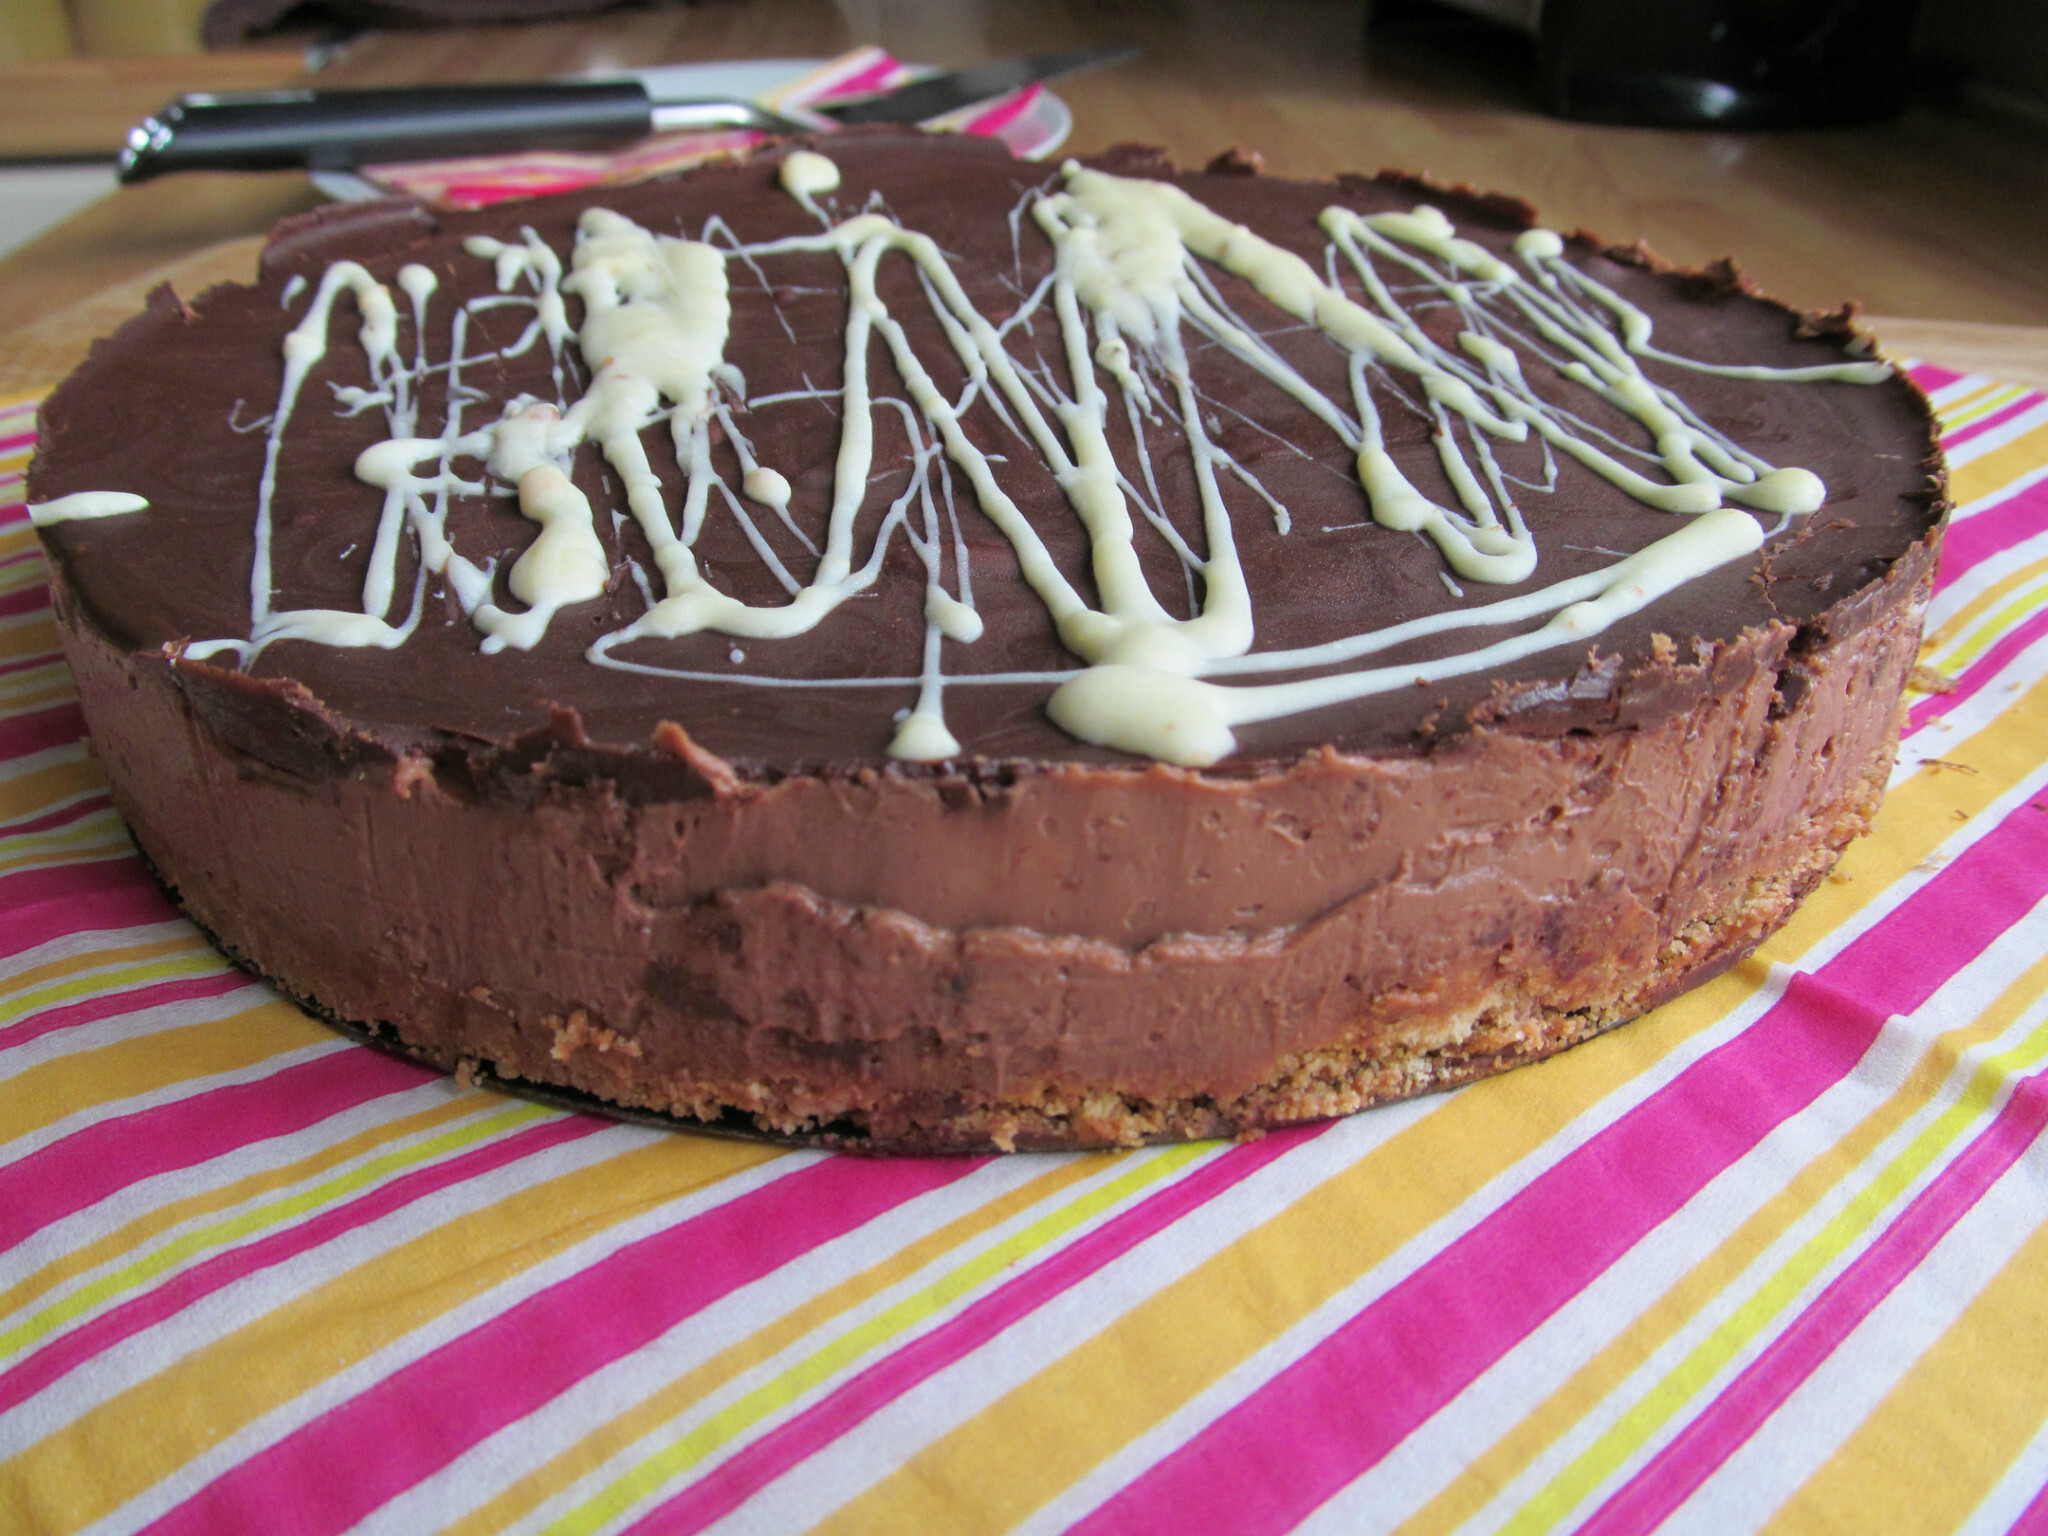 Lorraine Pascale's Chocolate Cheesecake